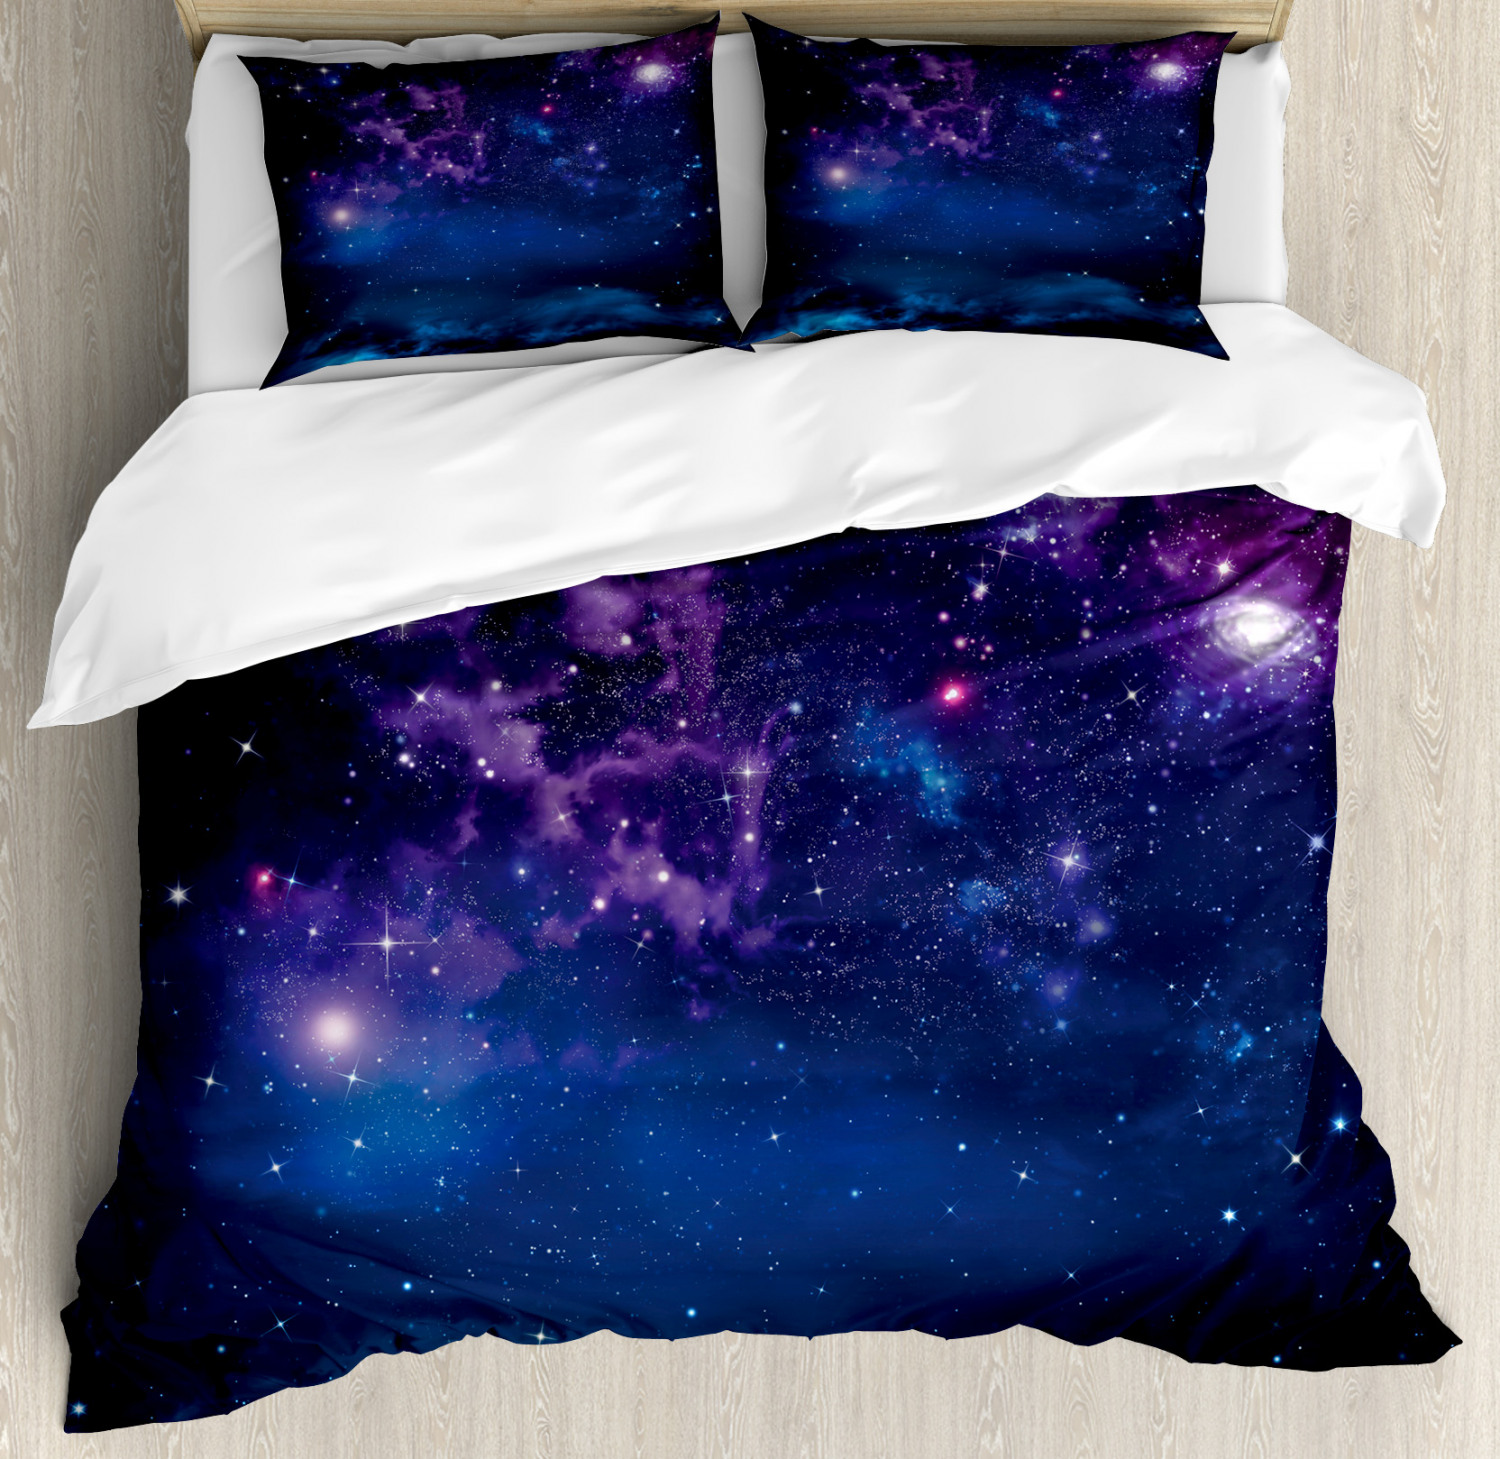 Space Duvet Cover Set with Pillow Shams Milky Way Themed Stars Print